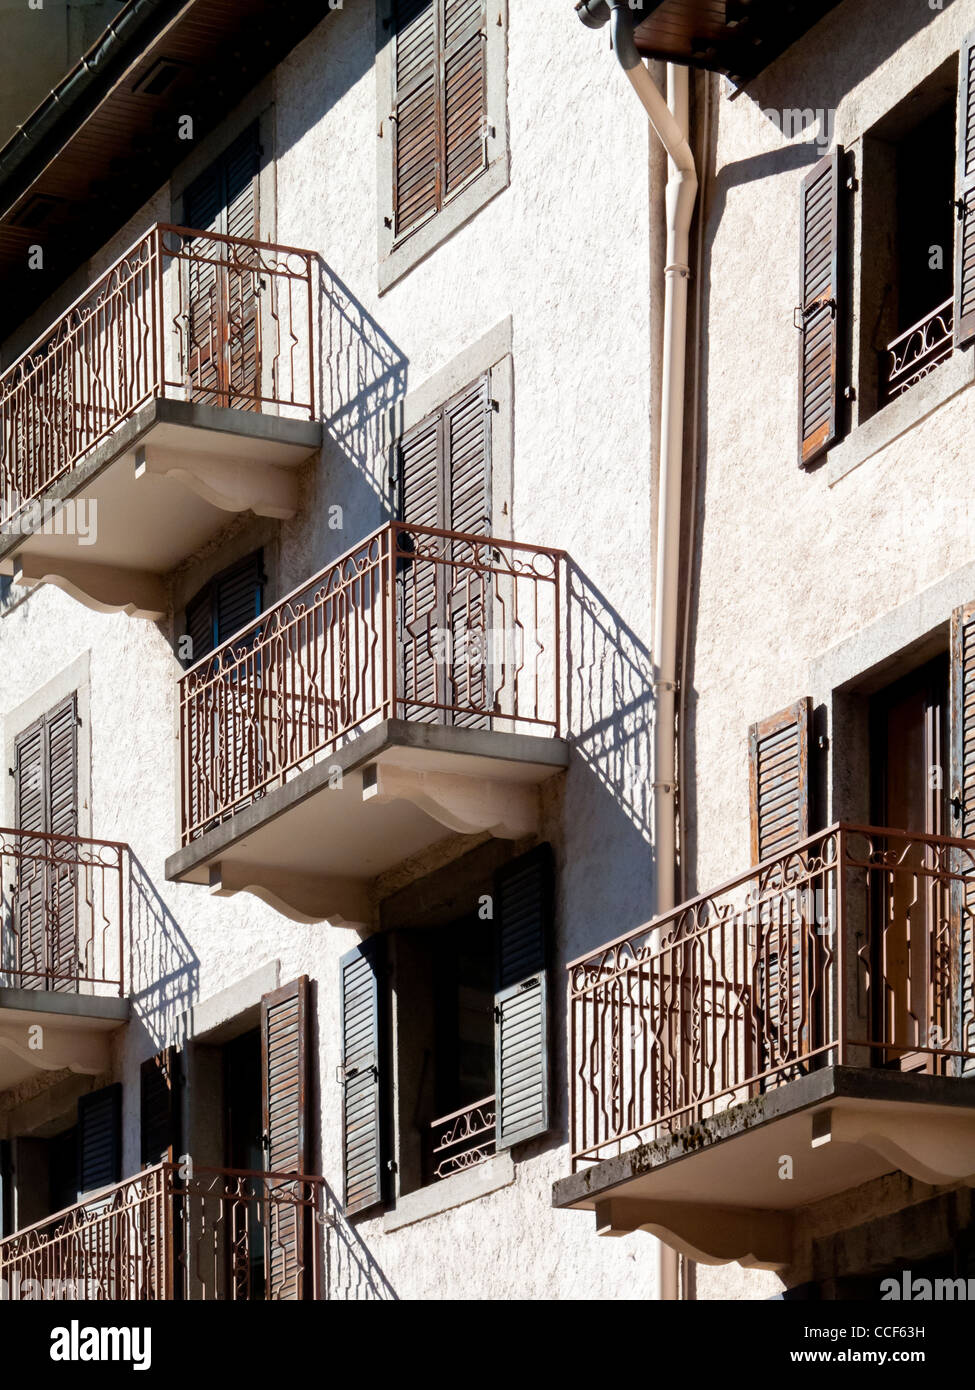 Typical Balconies On French Apartments In Chamonix A Resort Town In The  Alps Savoie France